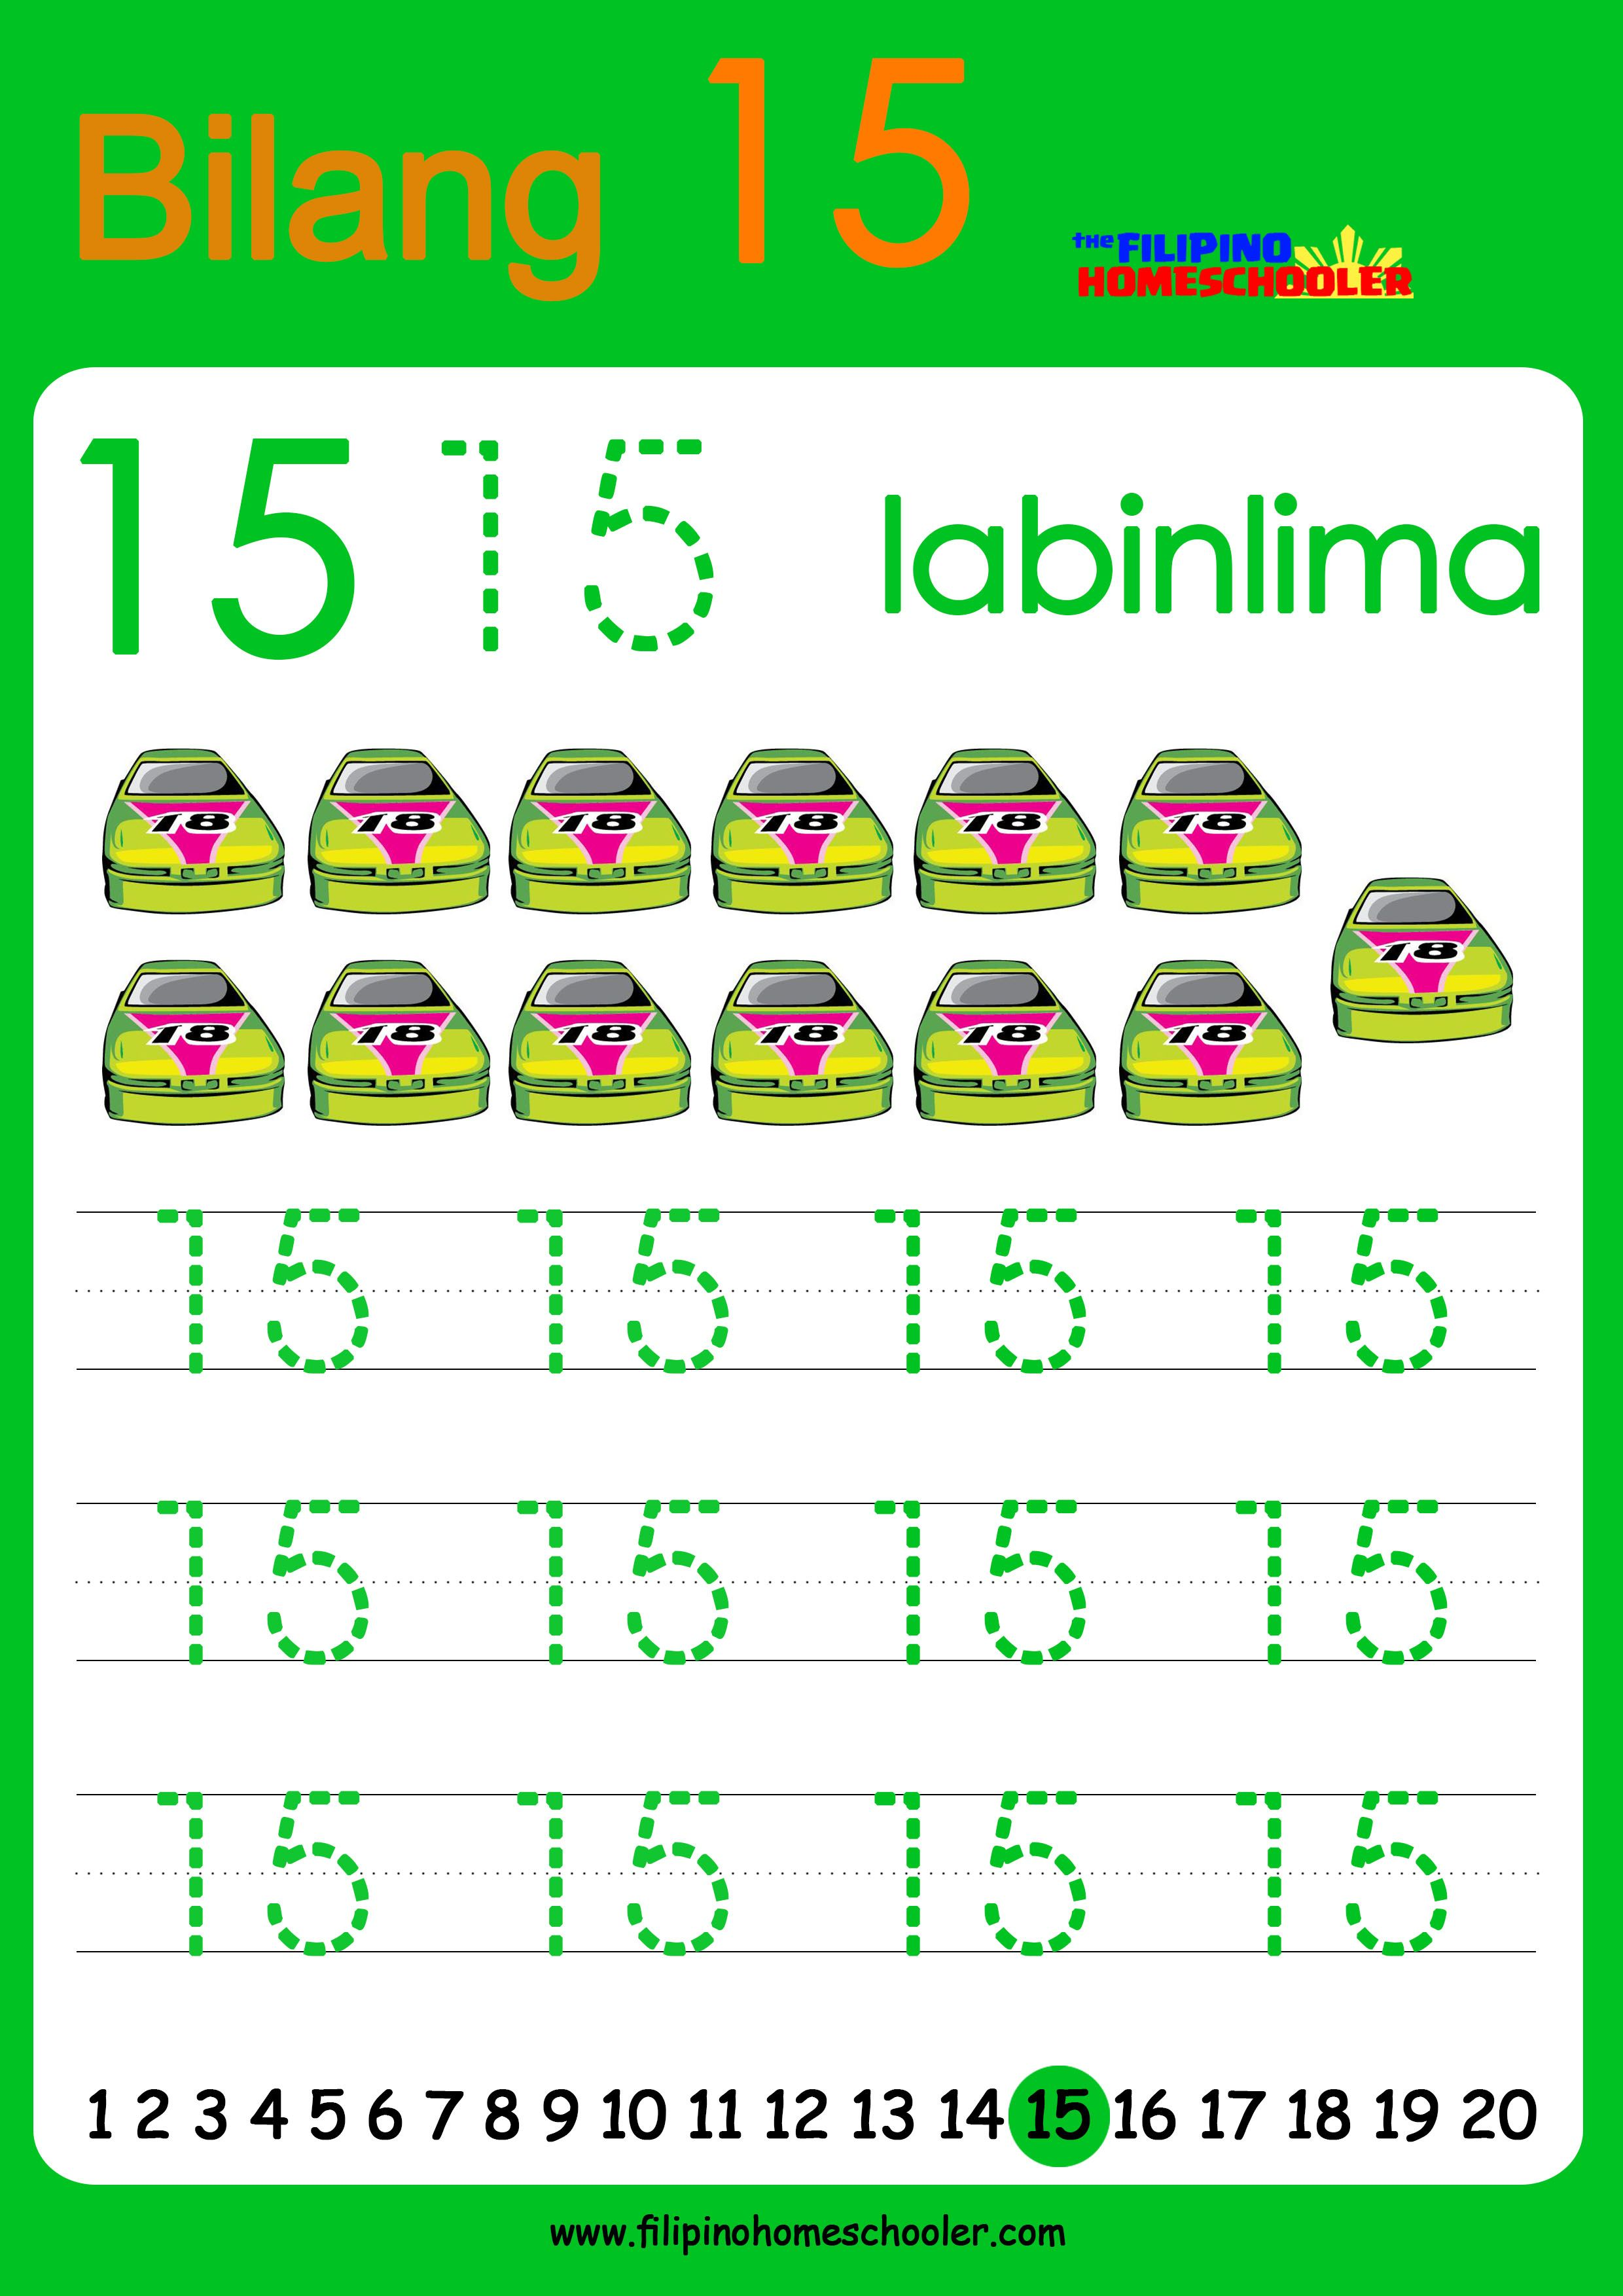 Free Filipino Numbers Worksheets From 11 20 With Images